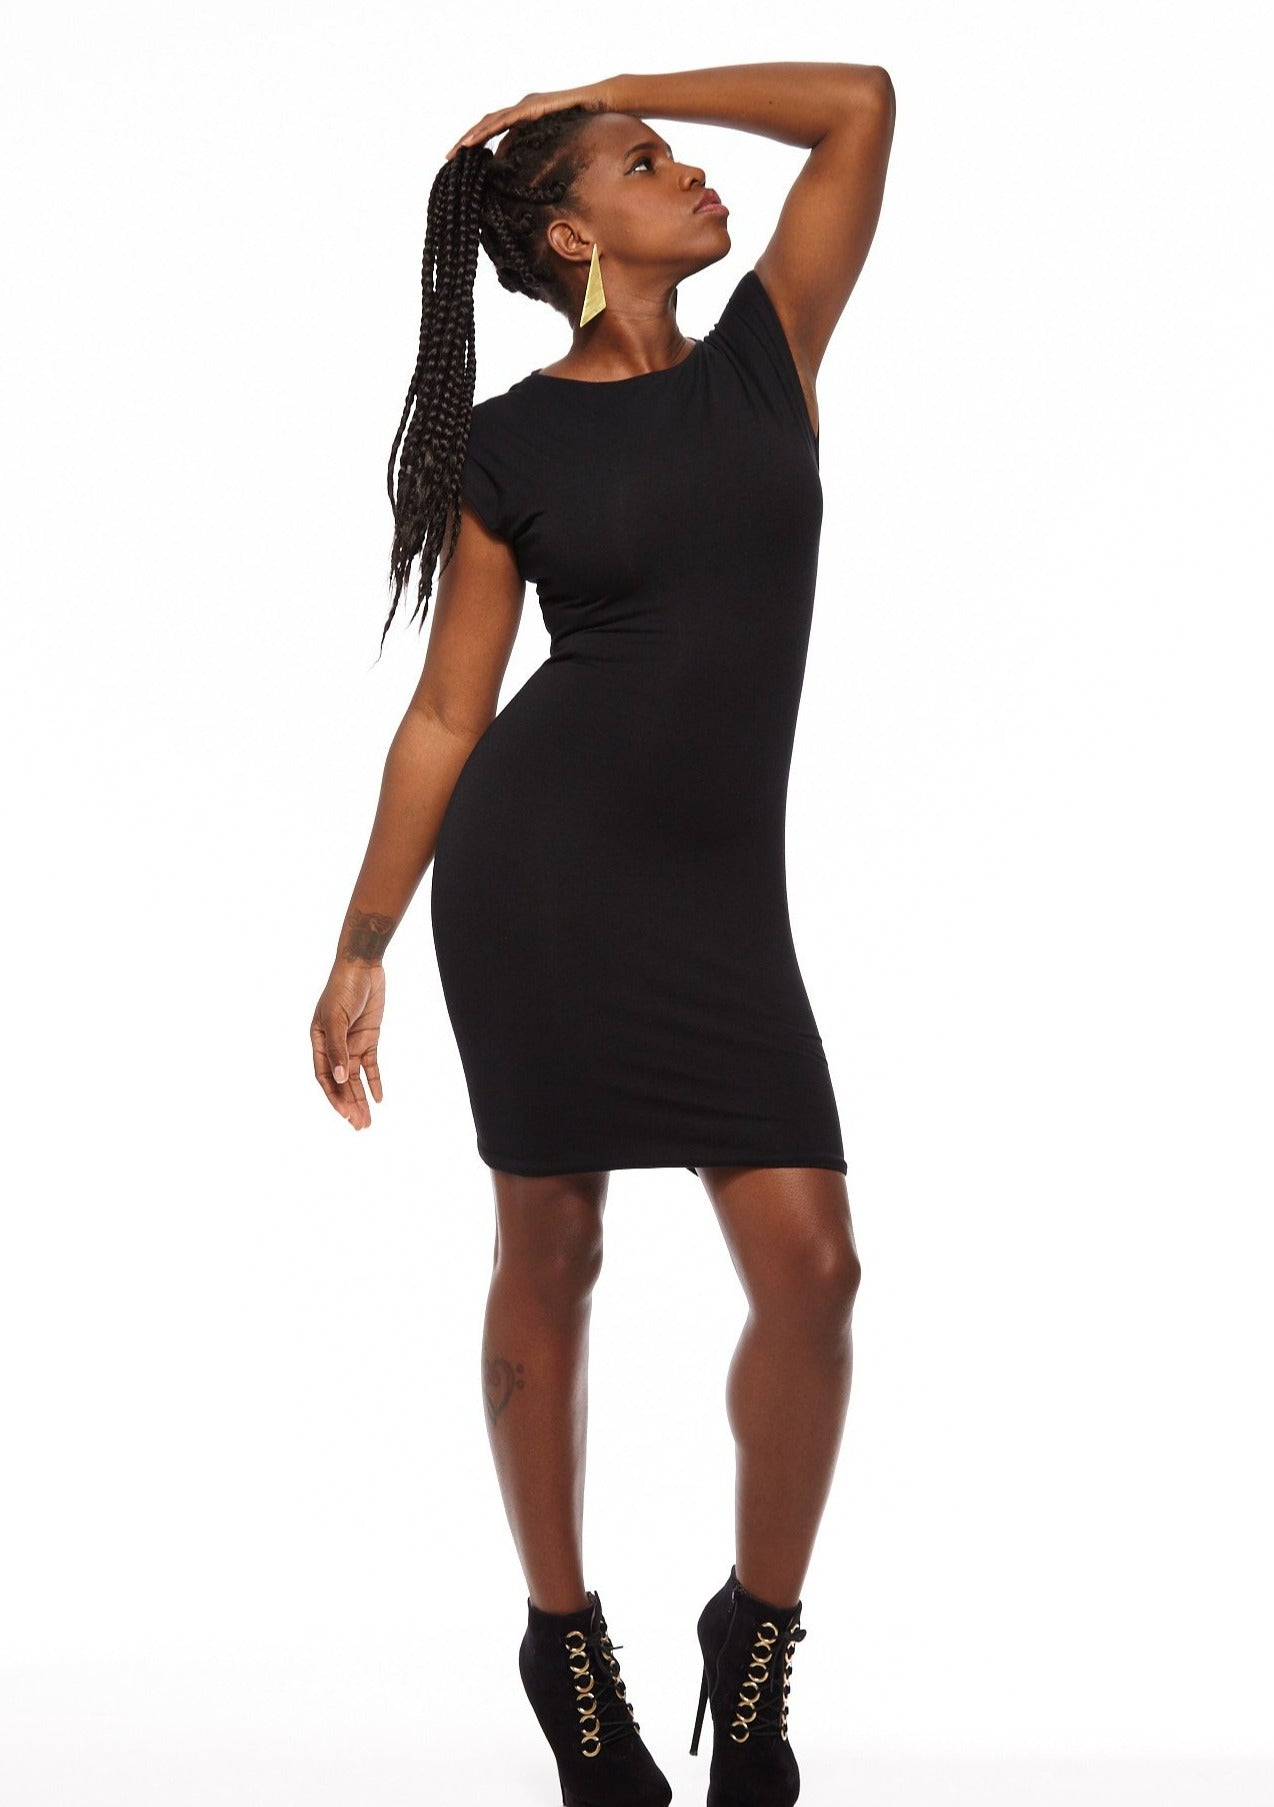 Original 2-Way Reversible Dress